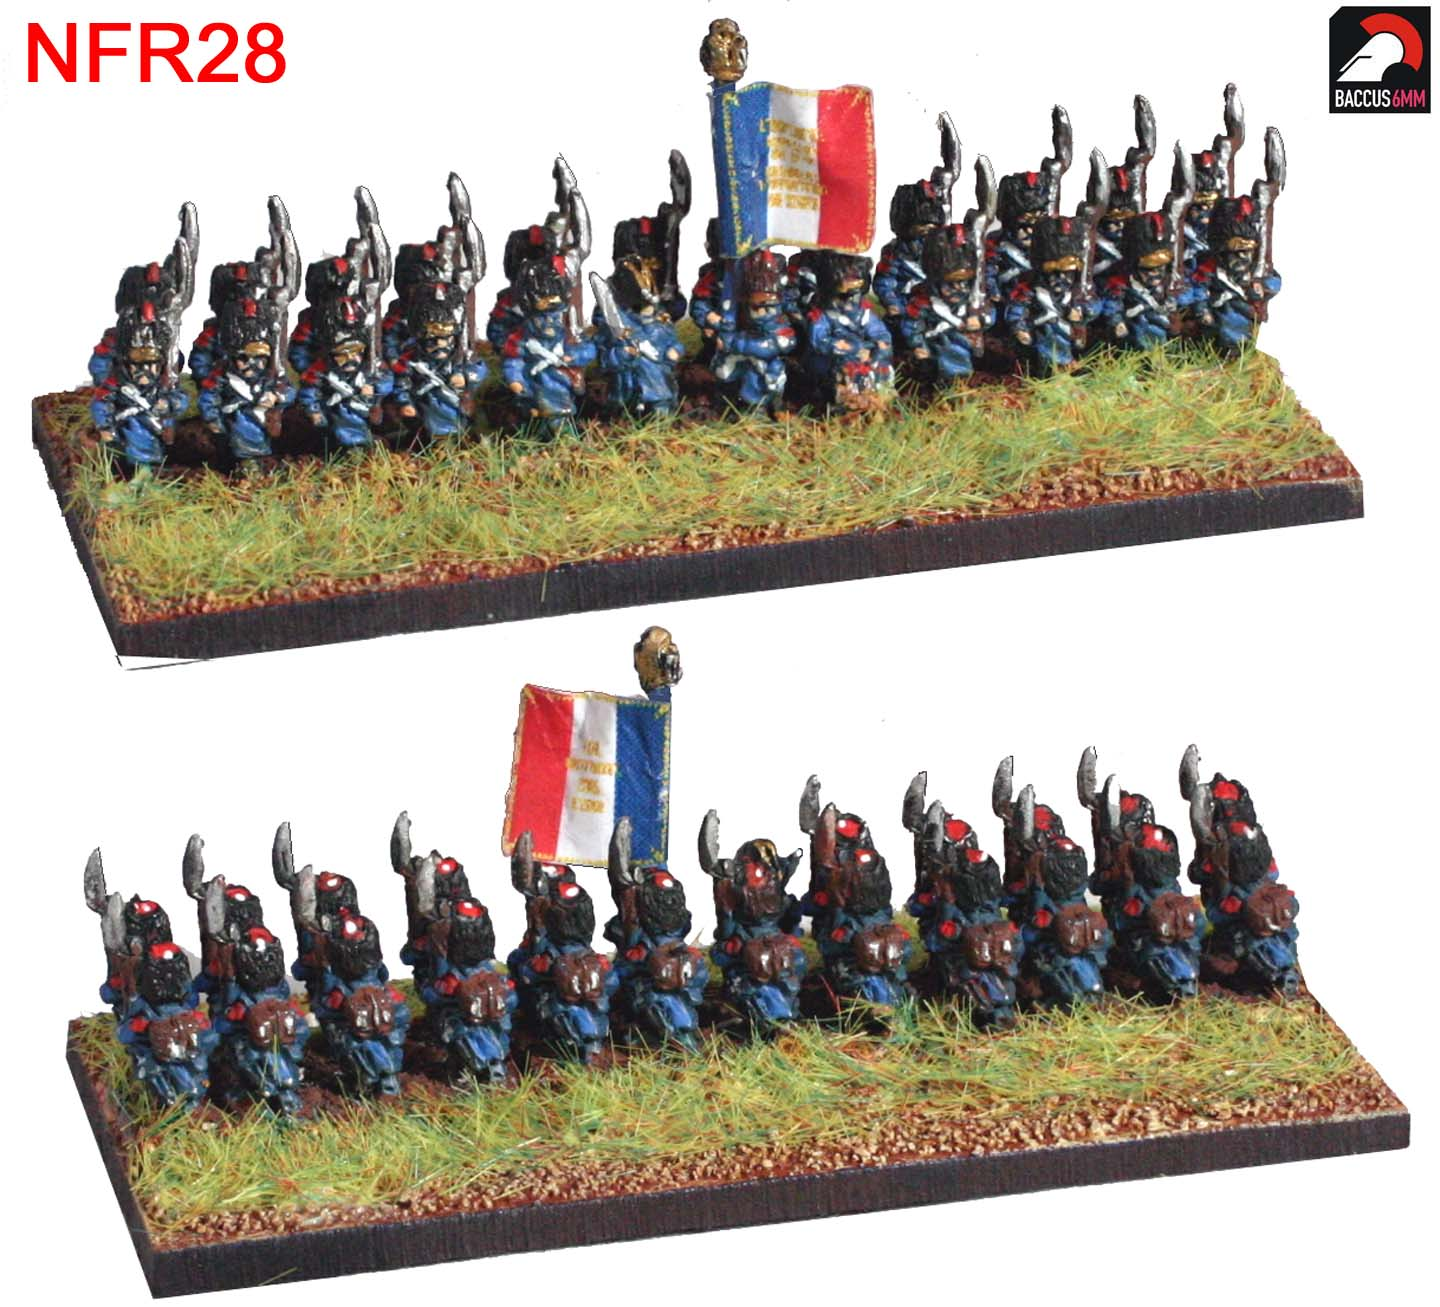 https://www.baccus6mm.com/includes/products/napoleonic/images/france/nfr28.jpg